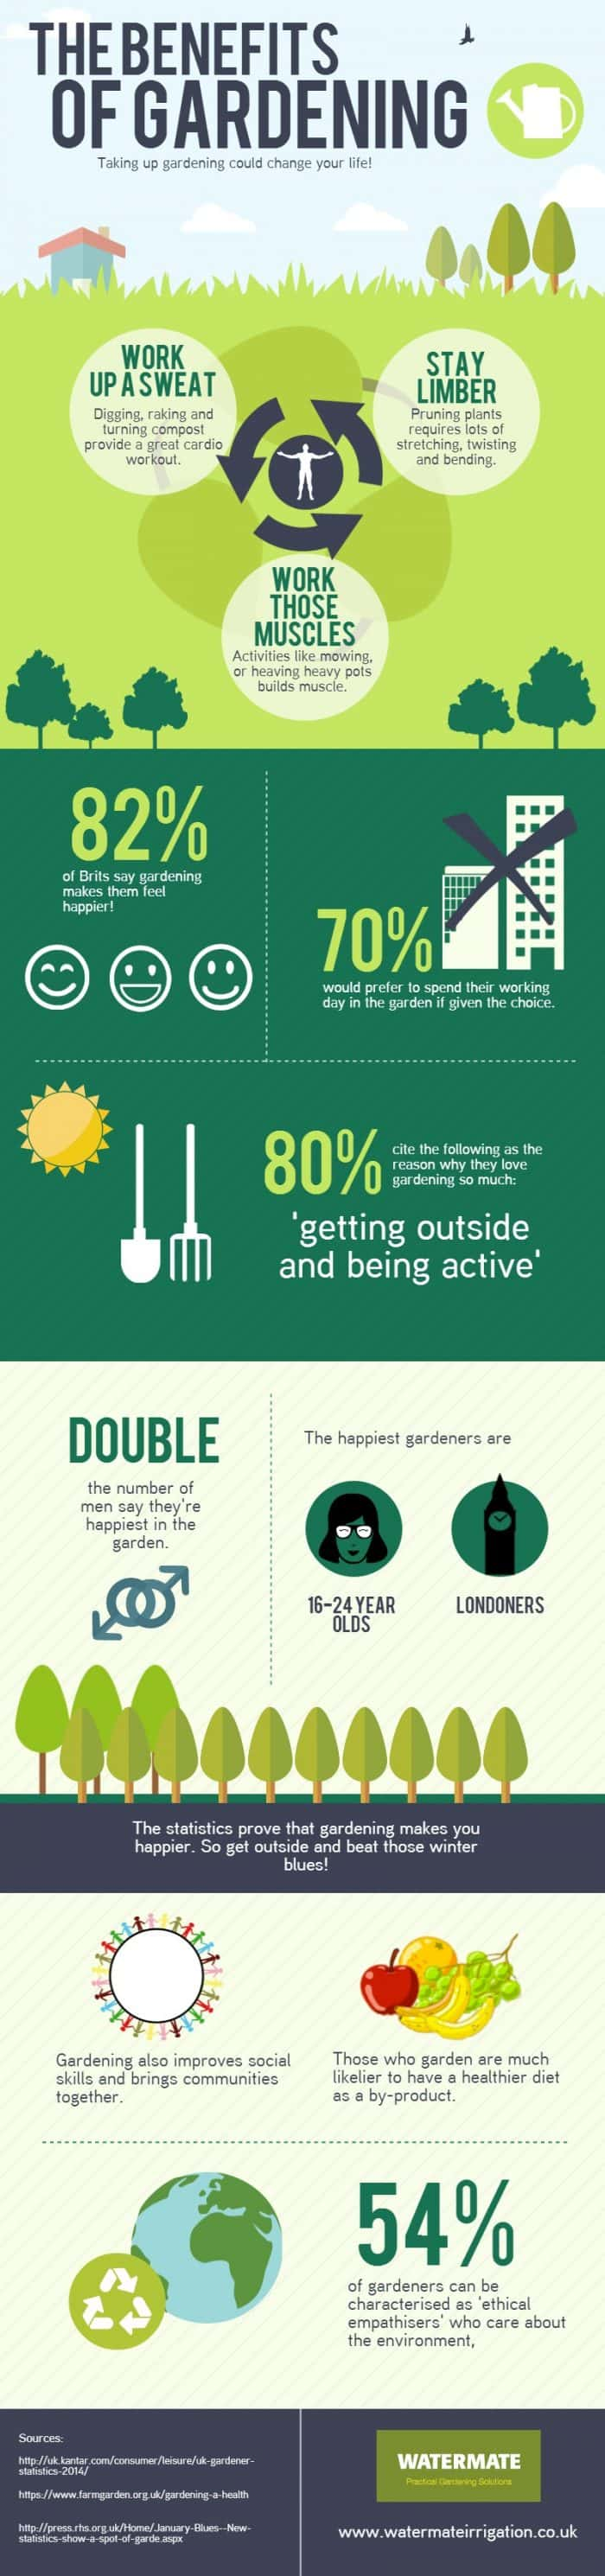 How a garden can improve your health and lifestyle